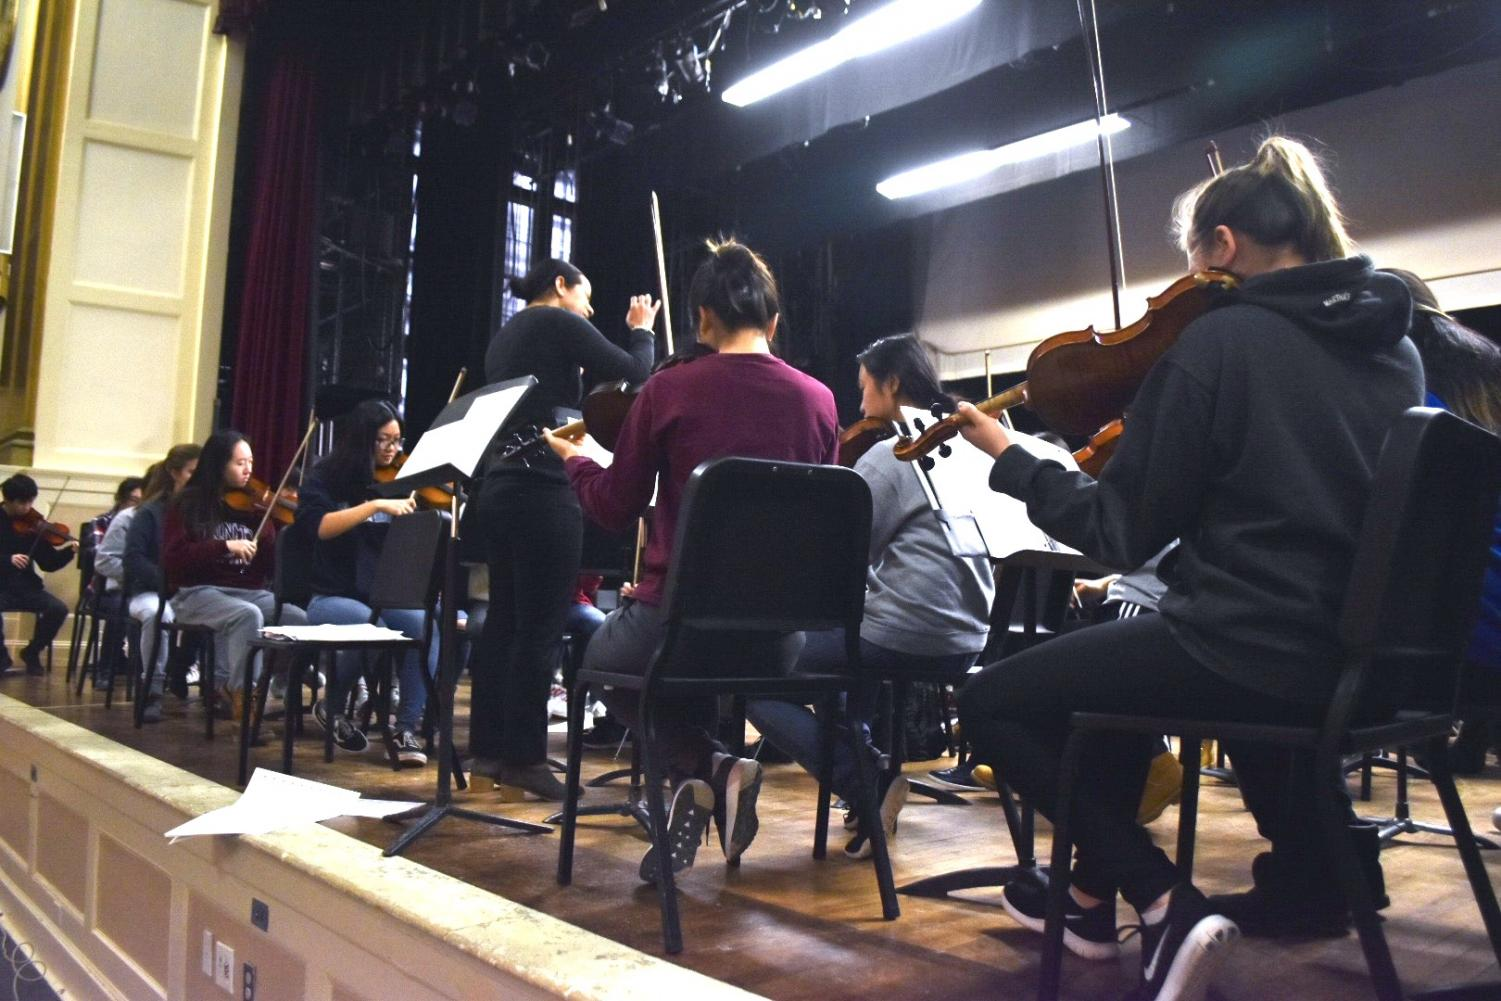 The orchestra, led  by conductor Nina Bishop, rehearses in the Robert-Dubbs Auditorium.  Rehearsals are held during  Z-block. The orchestra is currently preparing Brahms' Hungarian Dance.